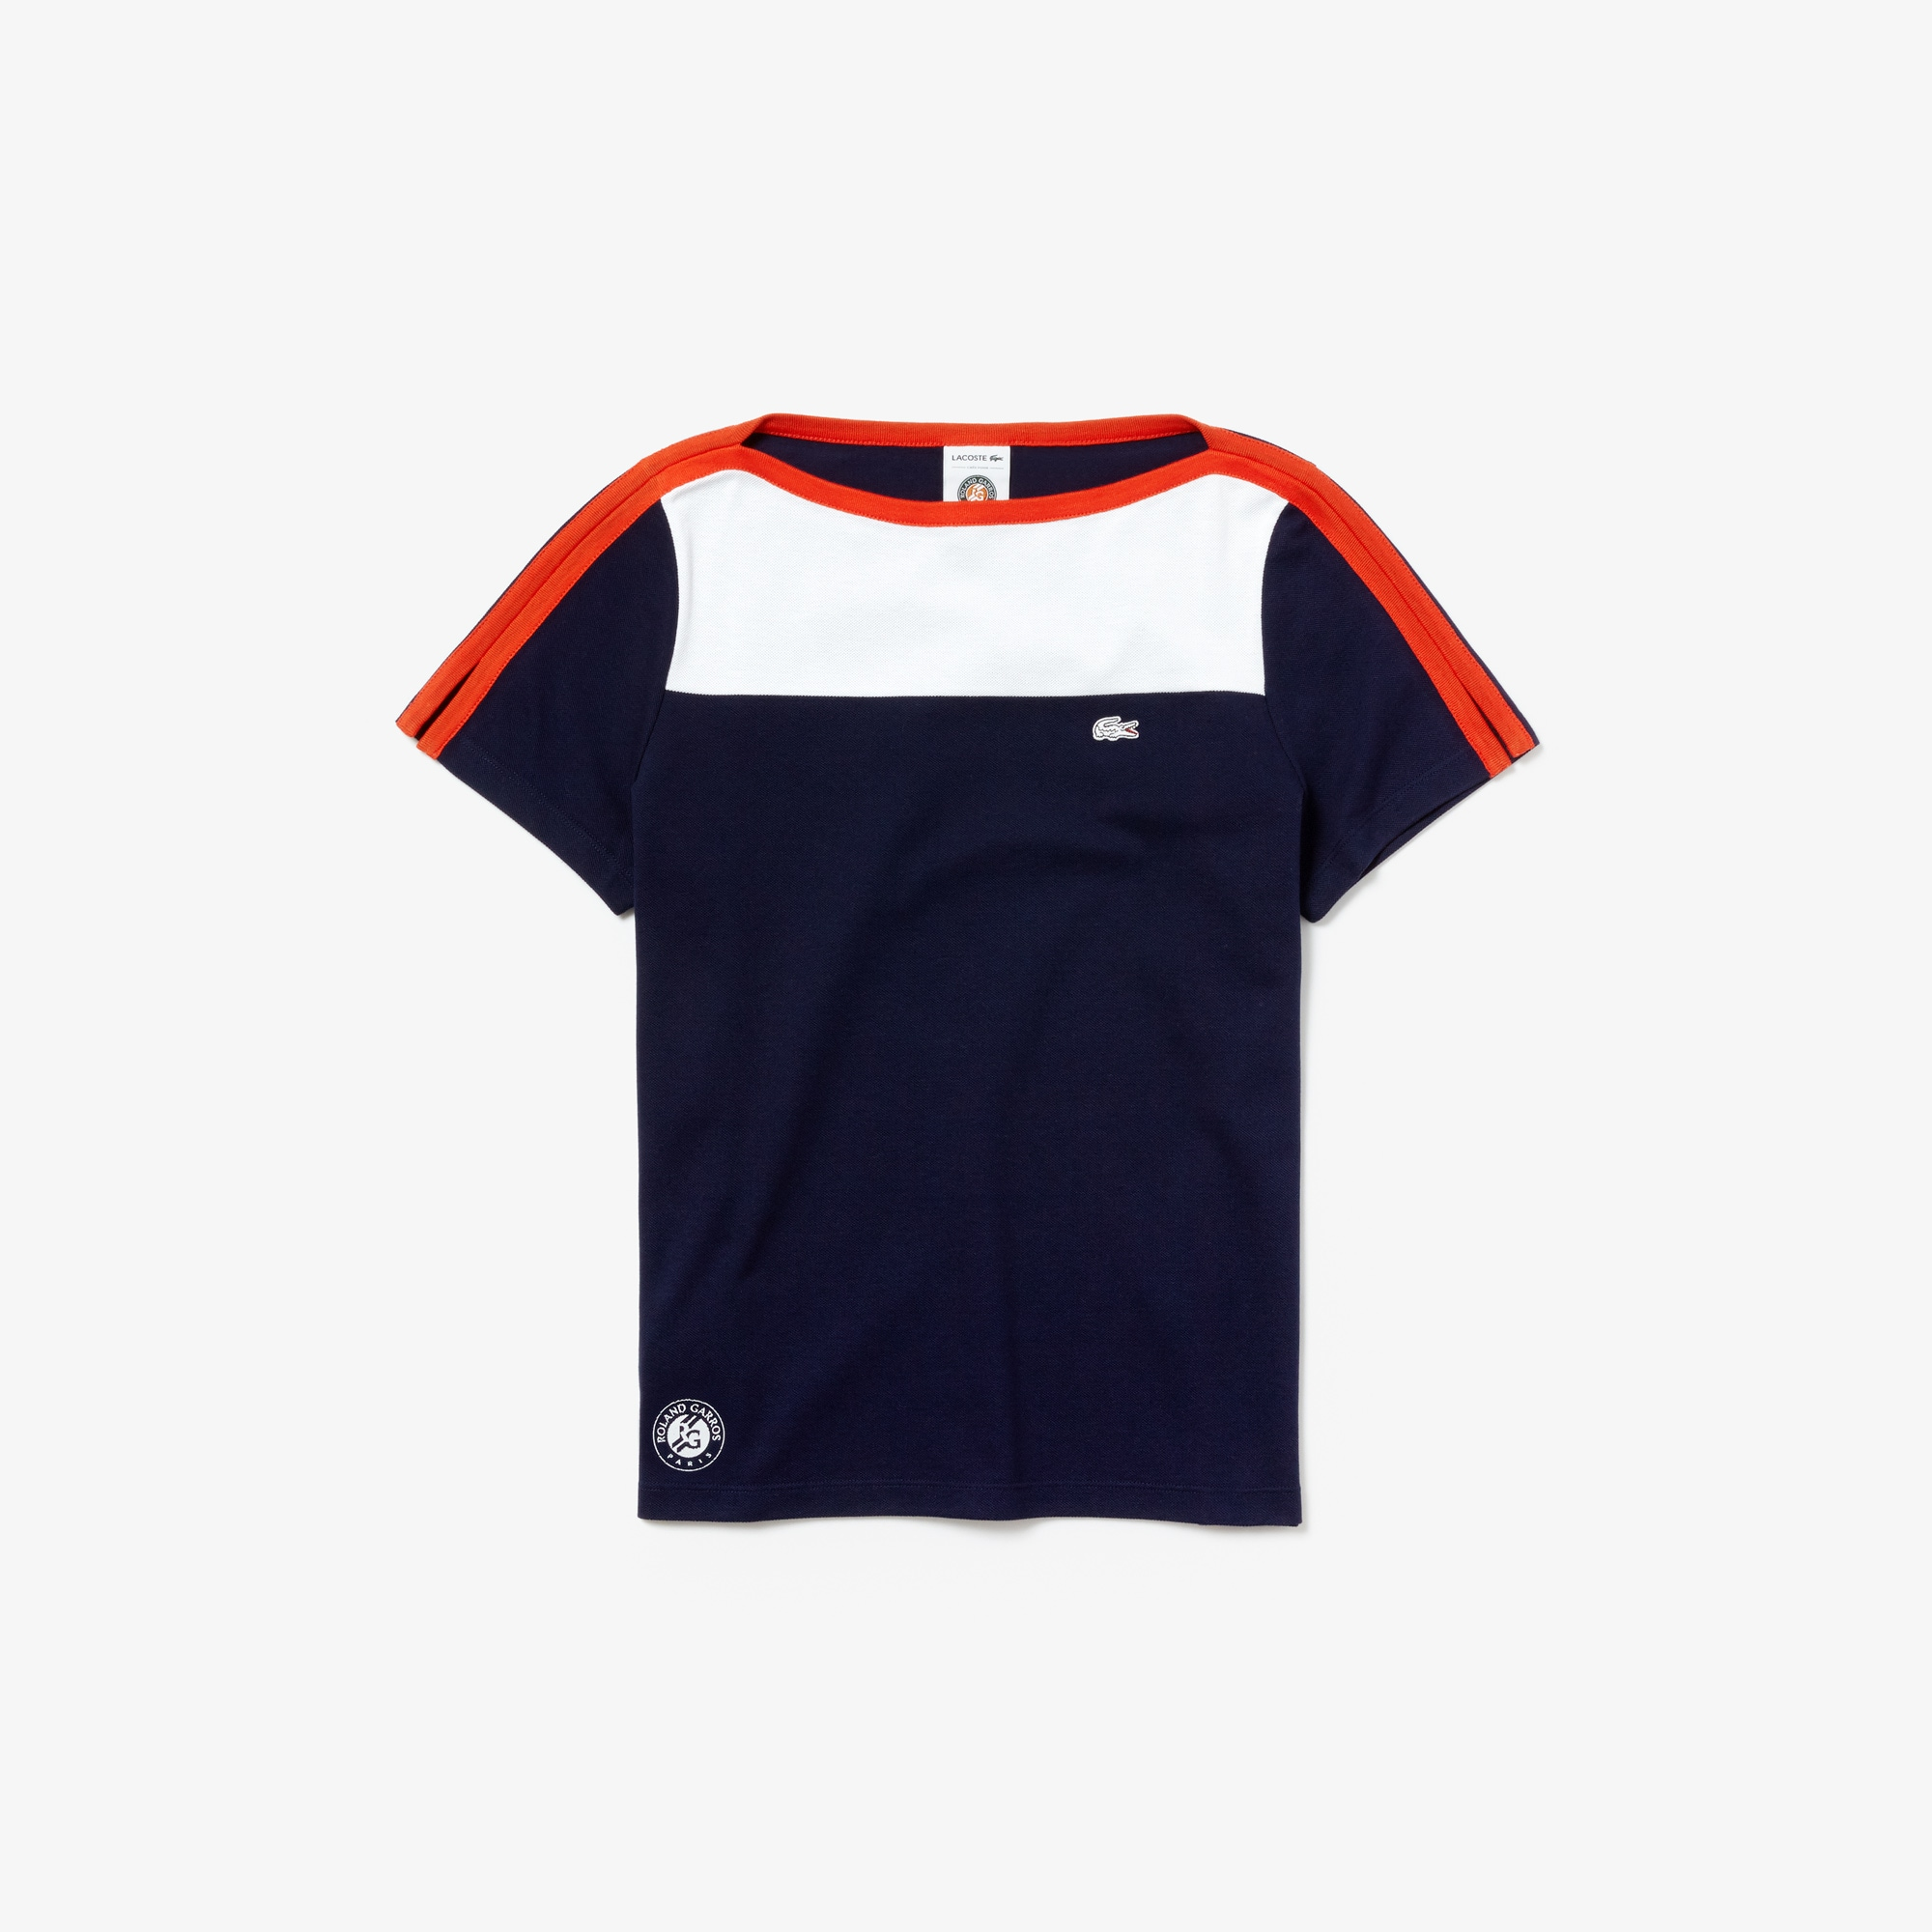 Damen Baumwoll-T-Shirt LACOSTE SPORT French Open Edition